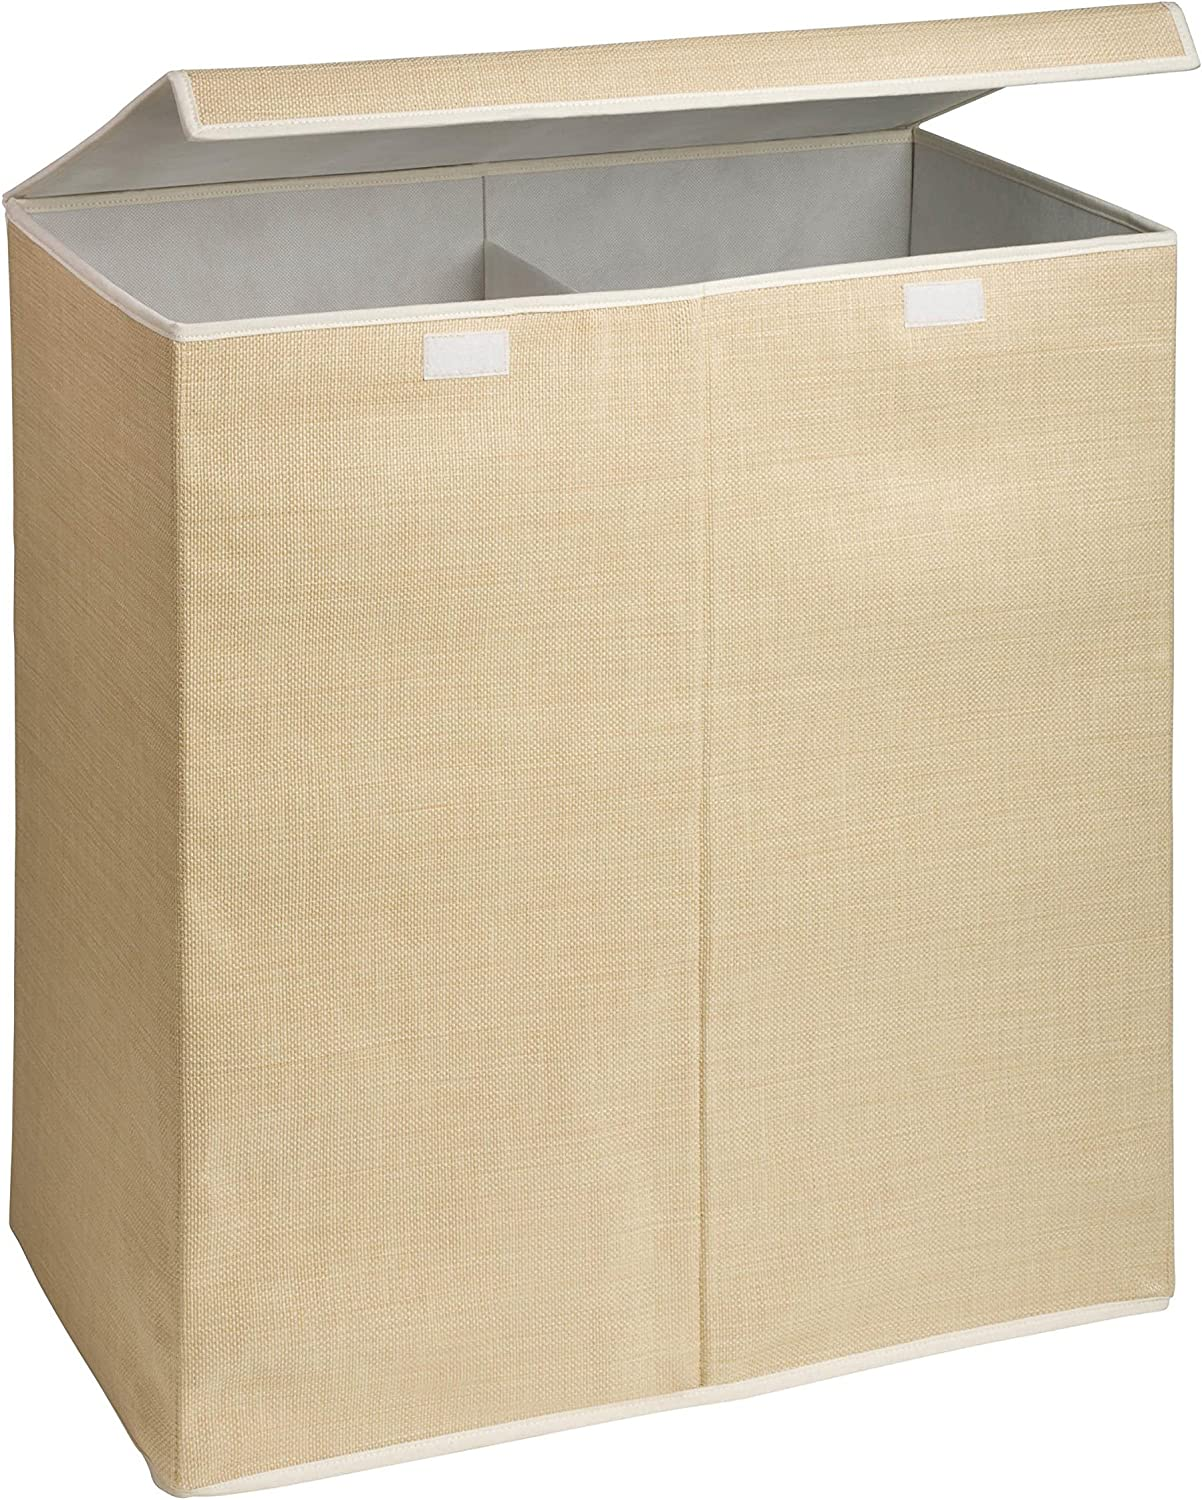 Honey-Can-Do Large Dual Laundry Hamper with Lid, Natural Resin